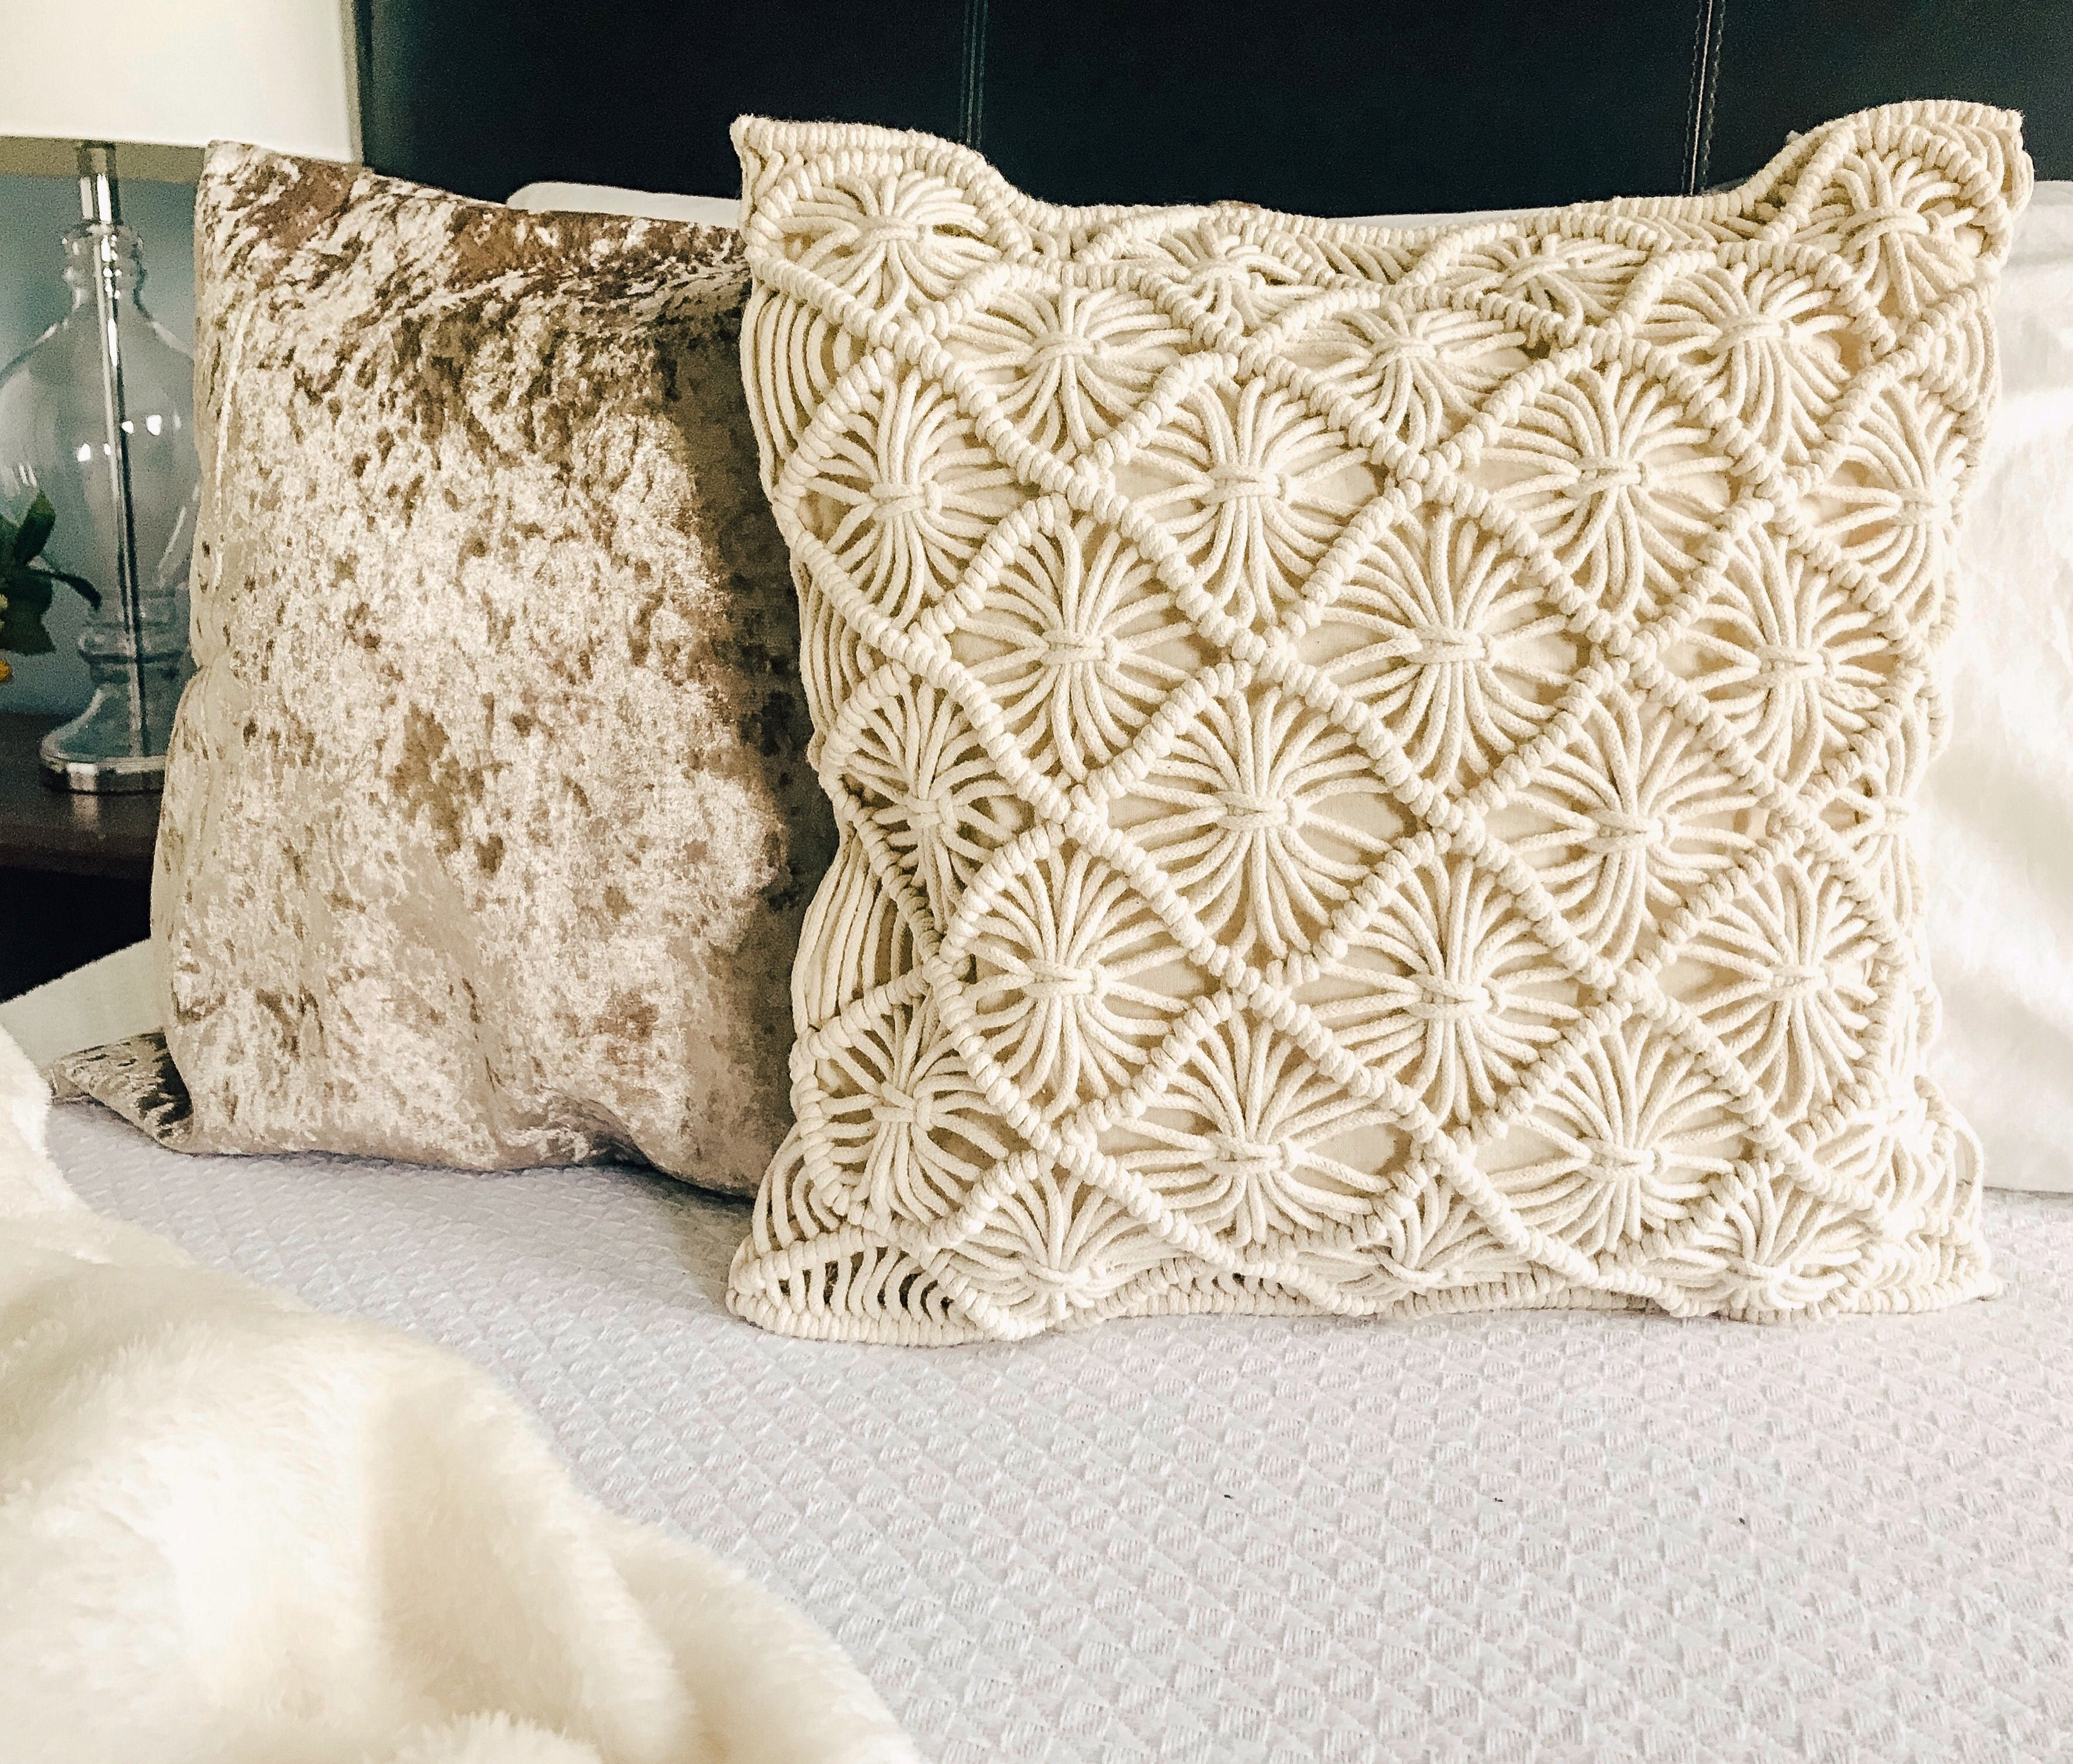 Throw Pillows Are A Great Way To Add And Mix Textures (Pillows from Busa Designs) | Handmade pillow covers, Pillow texture, Pillows